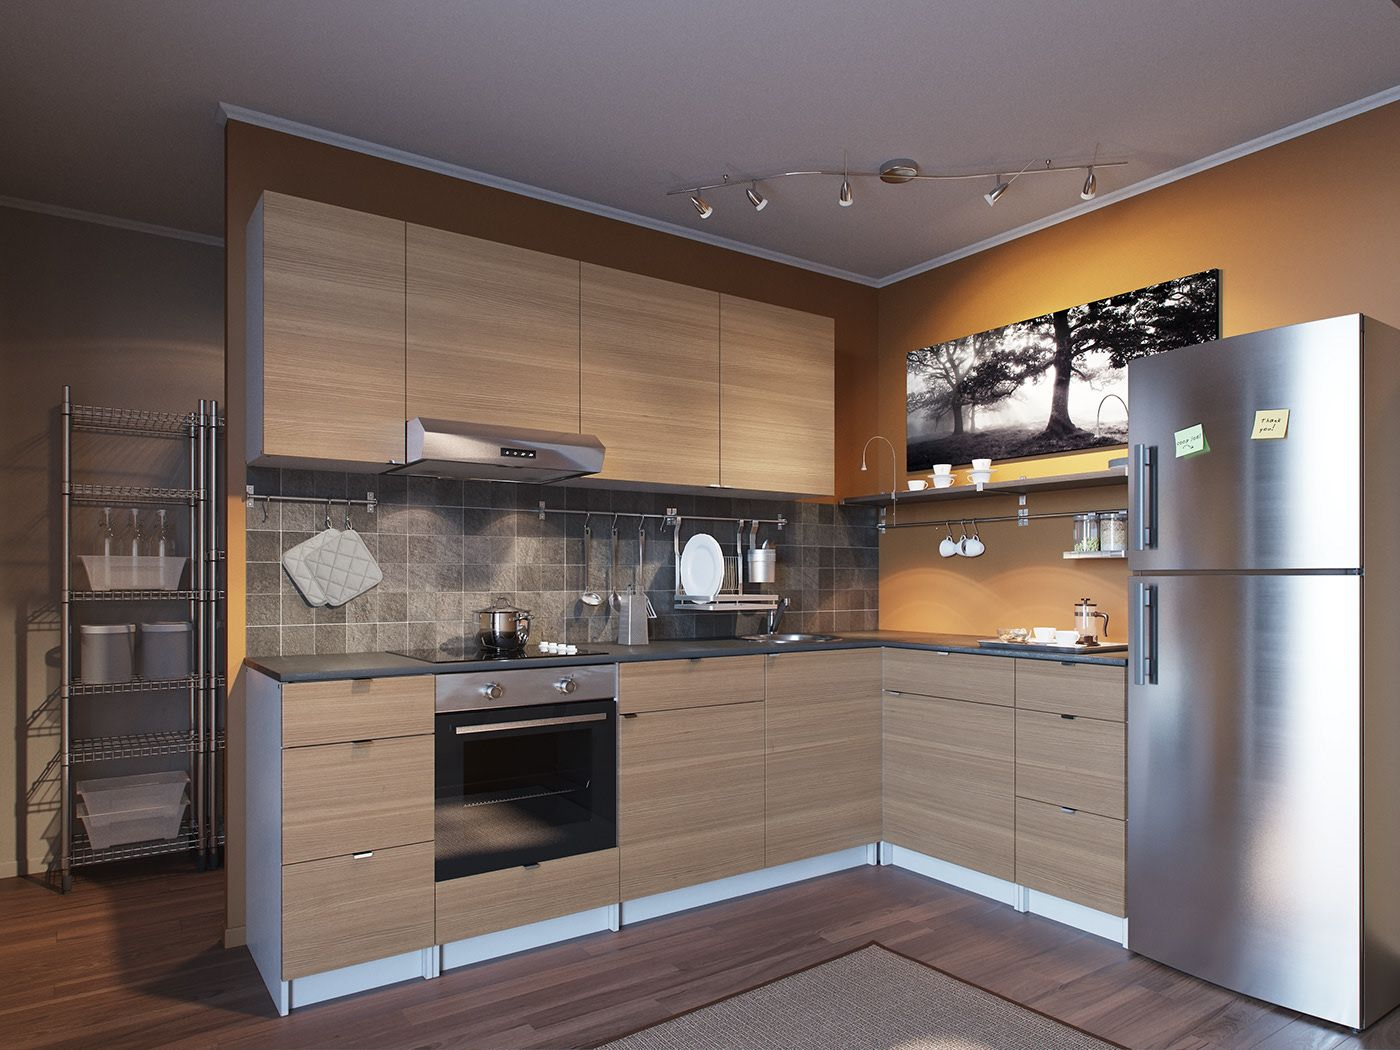 Visualization of kitchens for IKEA catalogs. on Behance in